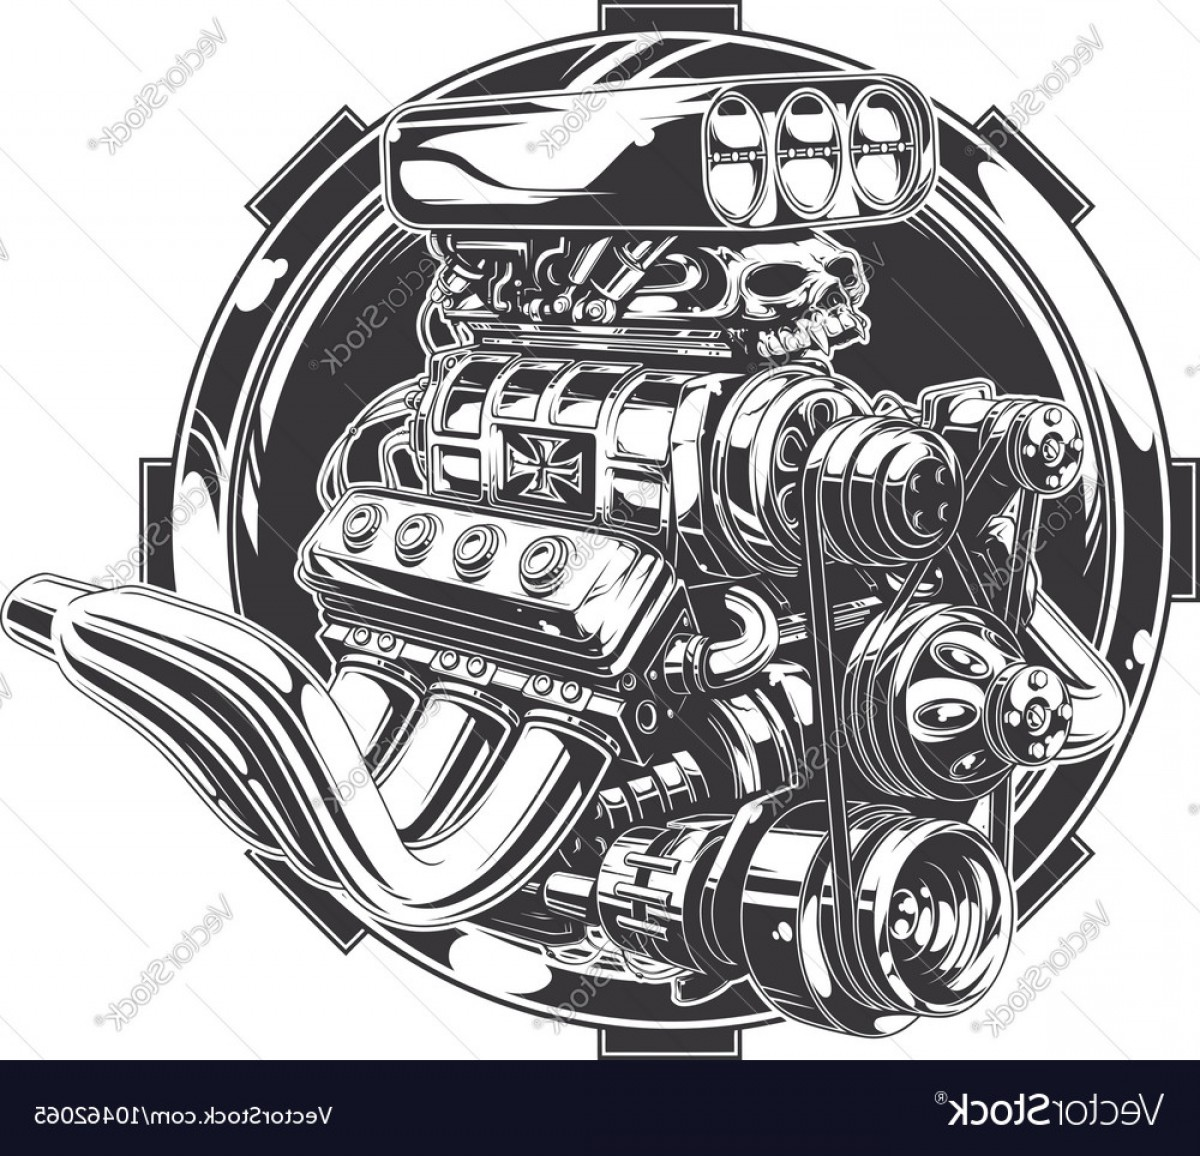 Detailed Tattoo Vector Images: Cool Detailed Hot Road Engine With Skull Tattoo Vector